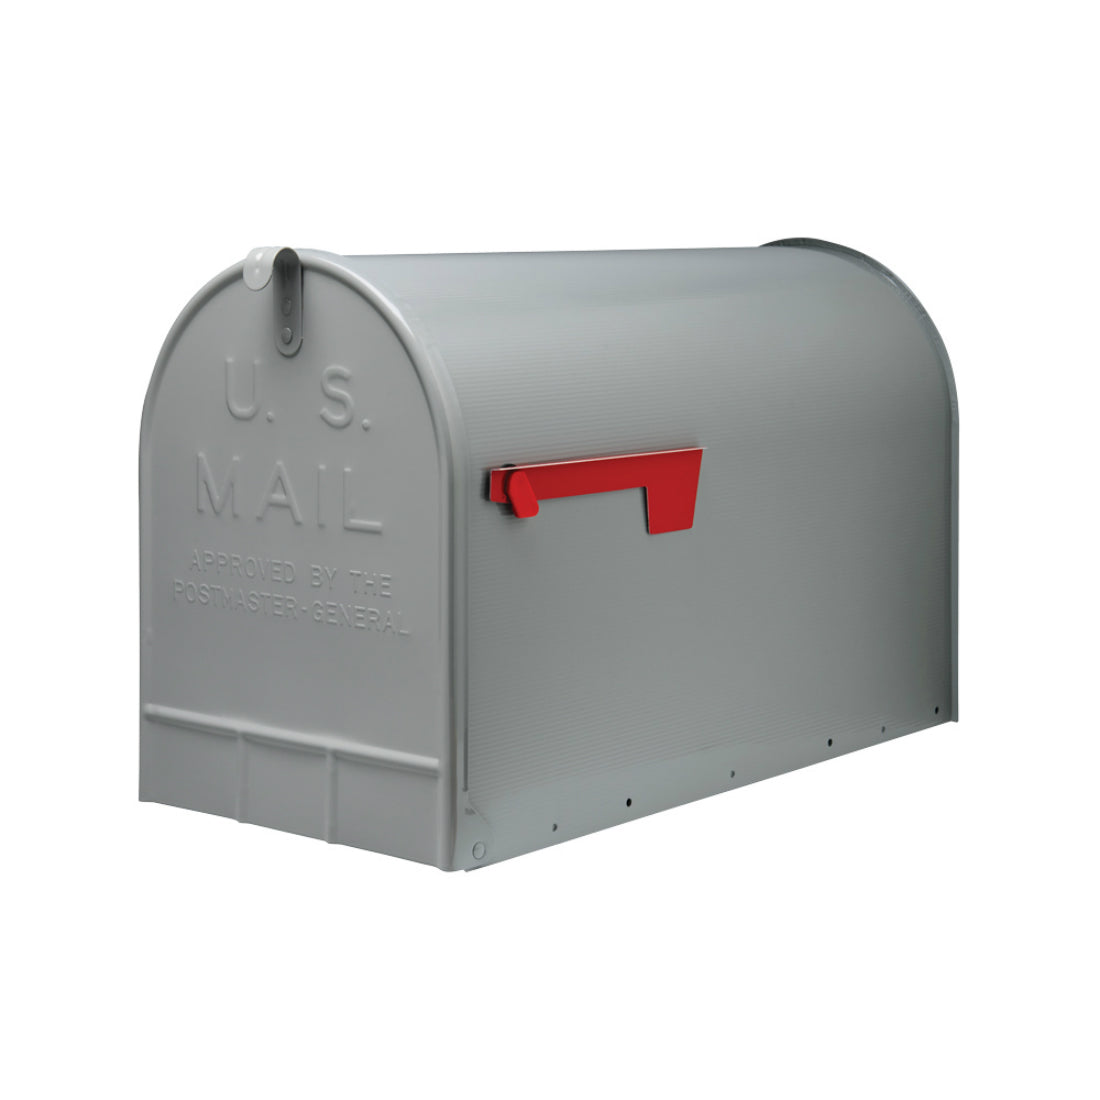 Gibraltar ST200000 Jumbo Size Mailbox, Silver Gray